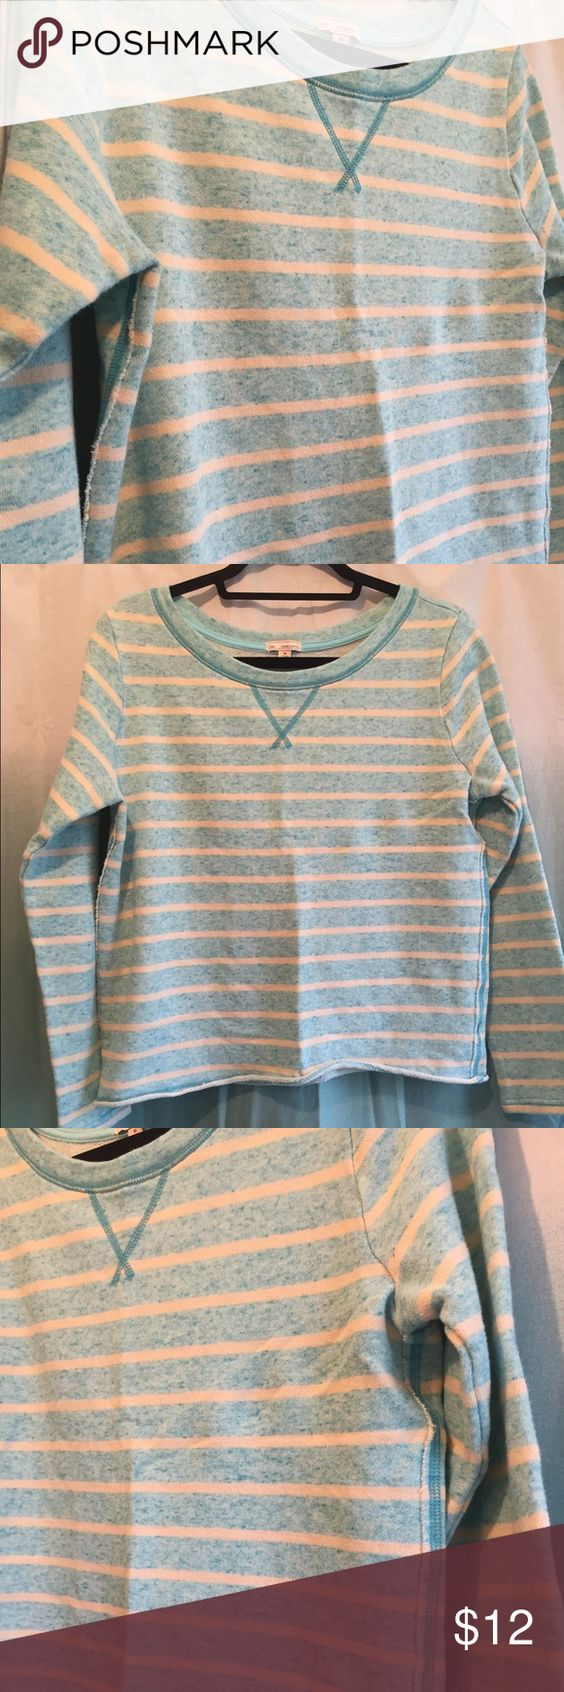 💕EUC GAP cropped striped Aqua/ cream sweatshirt This in EUC....no flaws noted!!!!  It looks like its brand new! The edges are a bit raw and will roll as they are supposed to!!! I do think it runs on the smaller size of medium.  Offers welcome!!! GAP Tops Sweatshirts & Hoodies